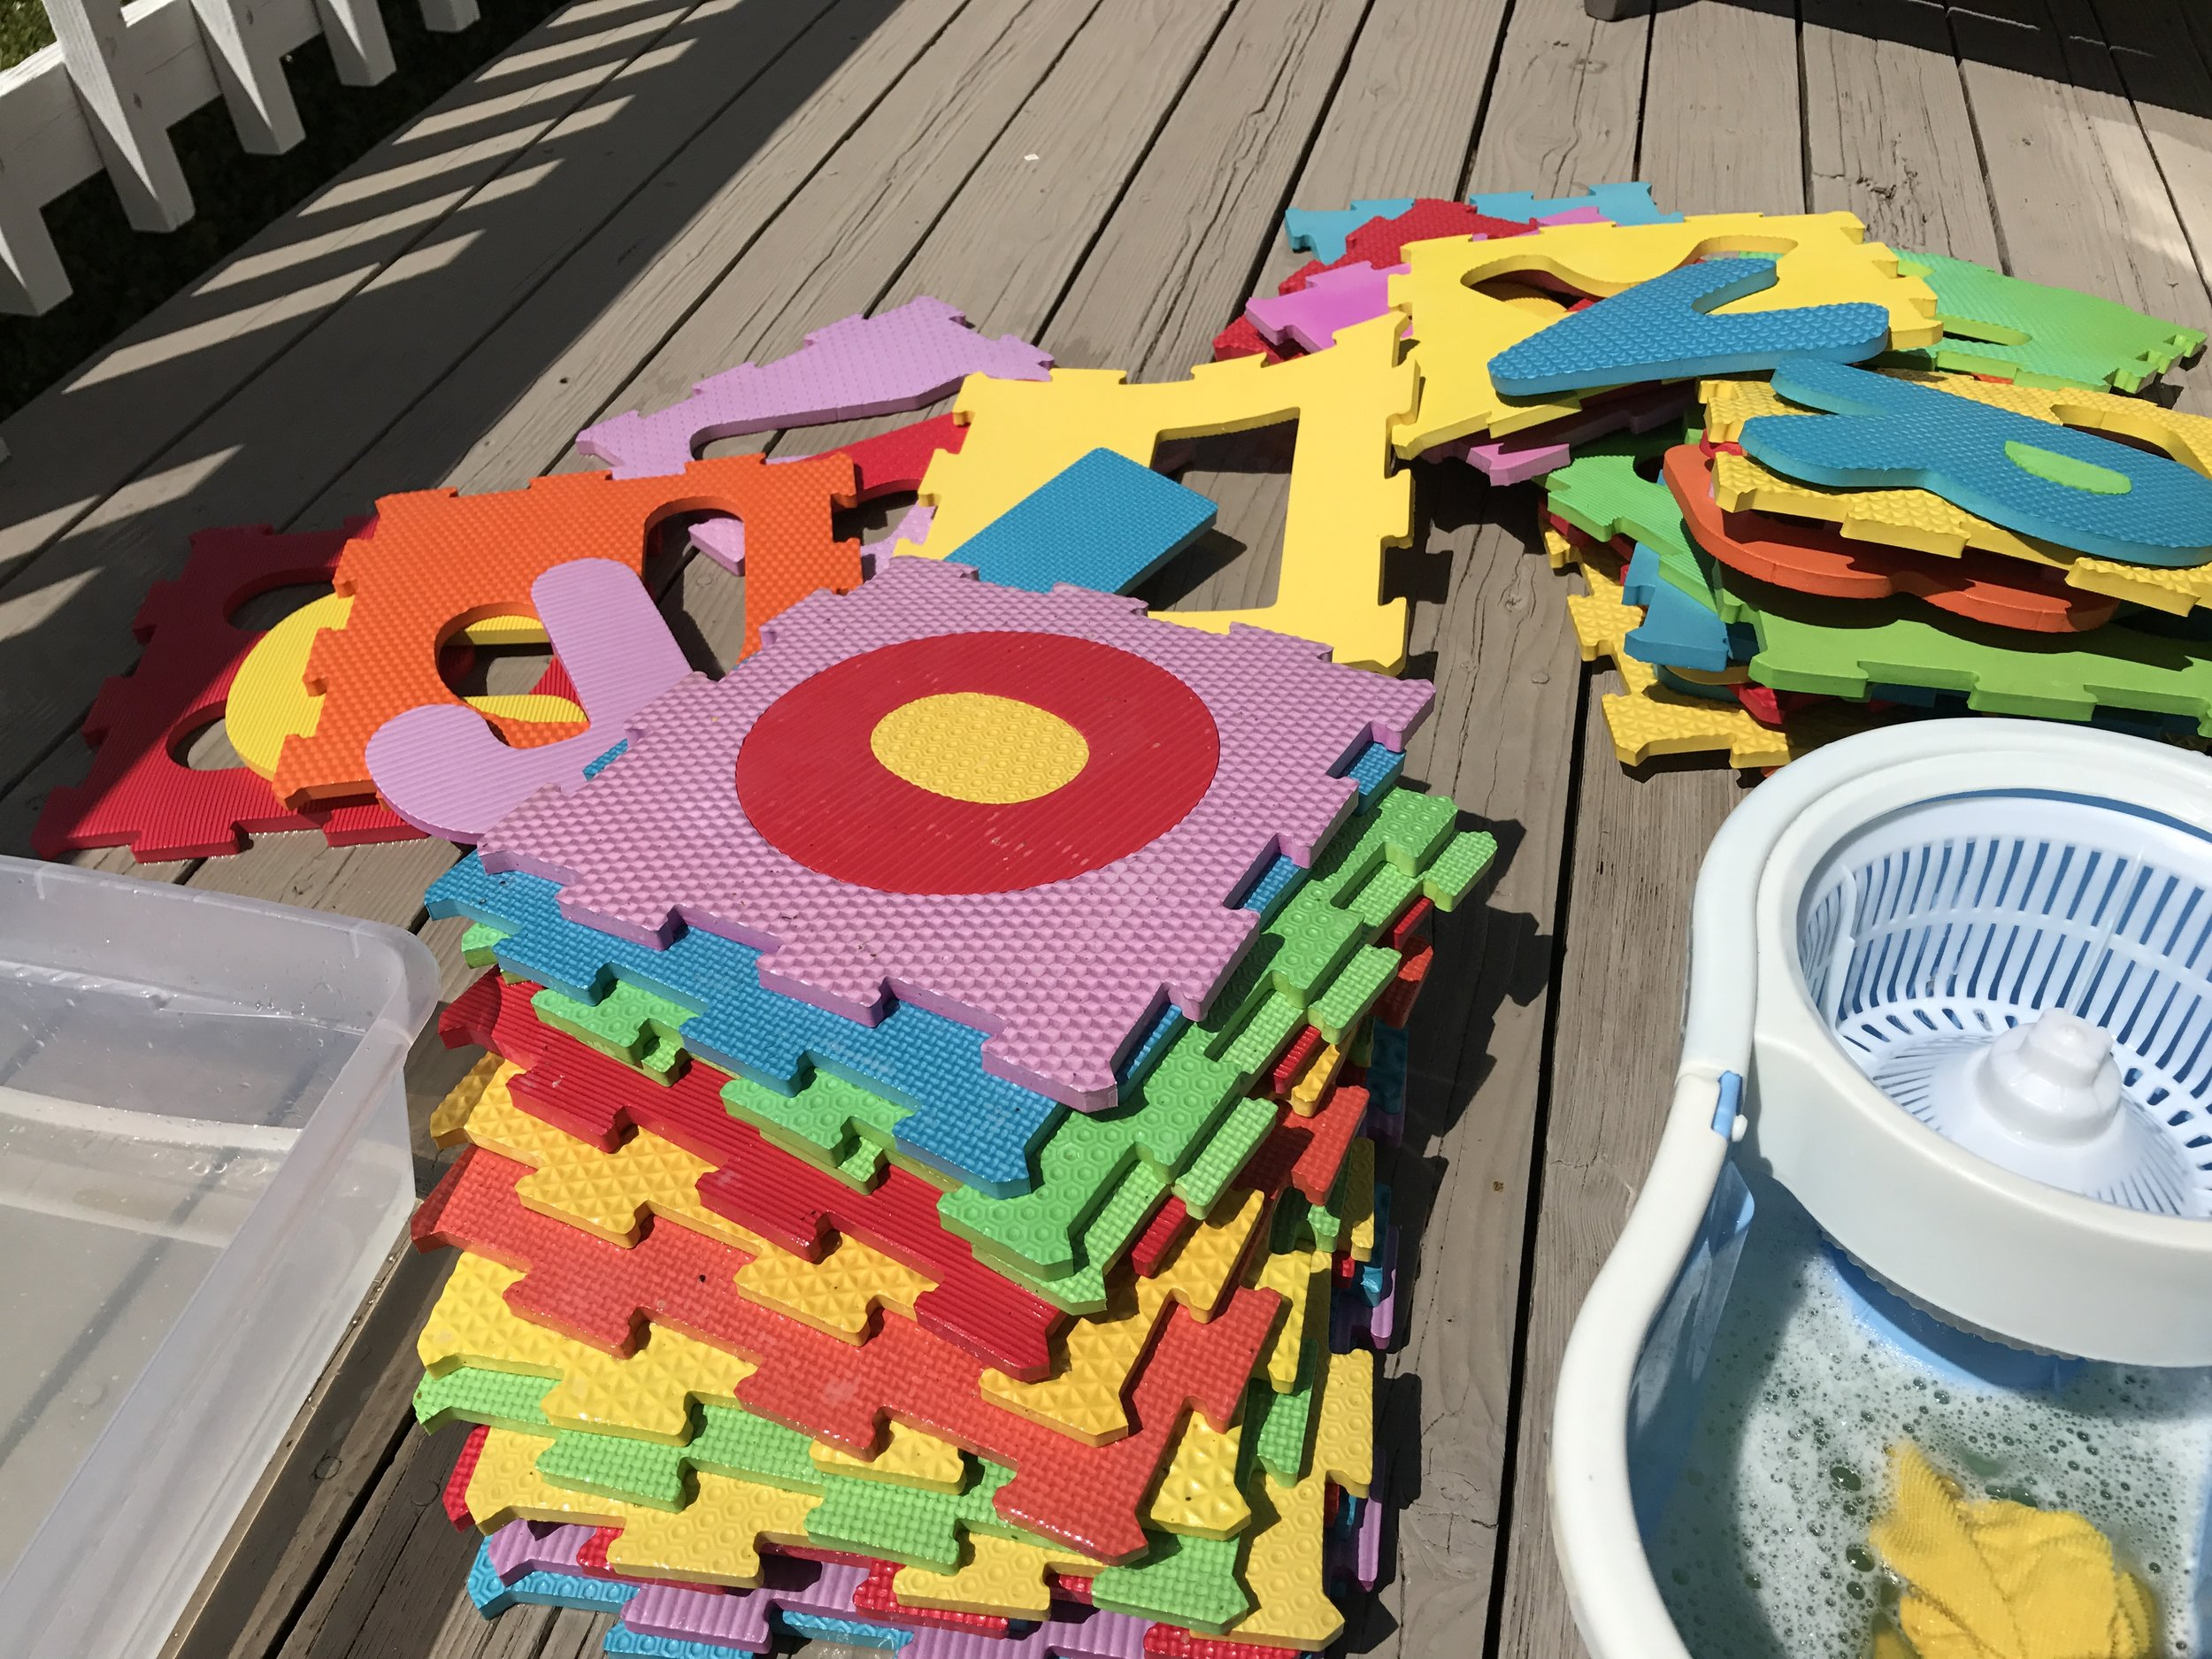 I took some time out this weekend to wash down Amelia's play mats - I scrubbed each with Mr. Clean and hot water, and then dunked them in cold water to get rid of the residue. Then left them on the deck to dry in the sun!